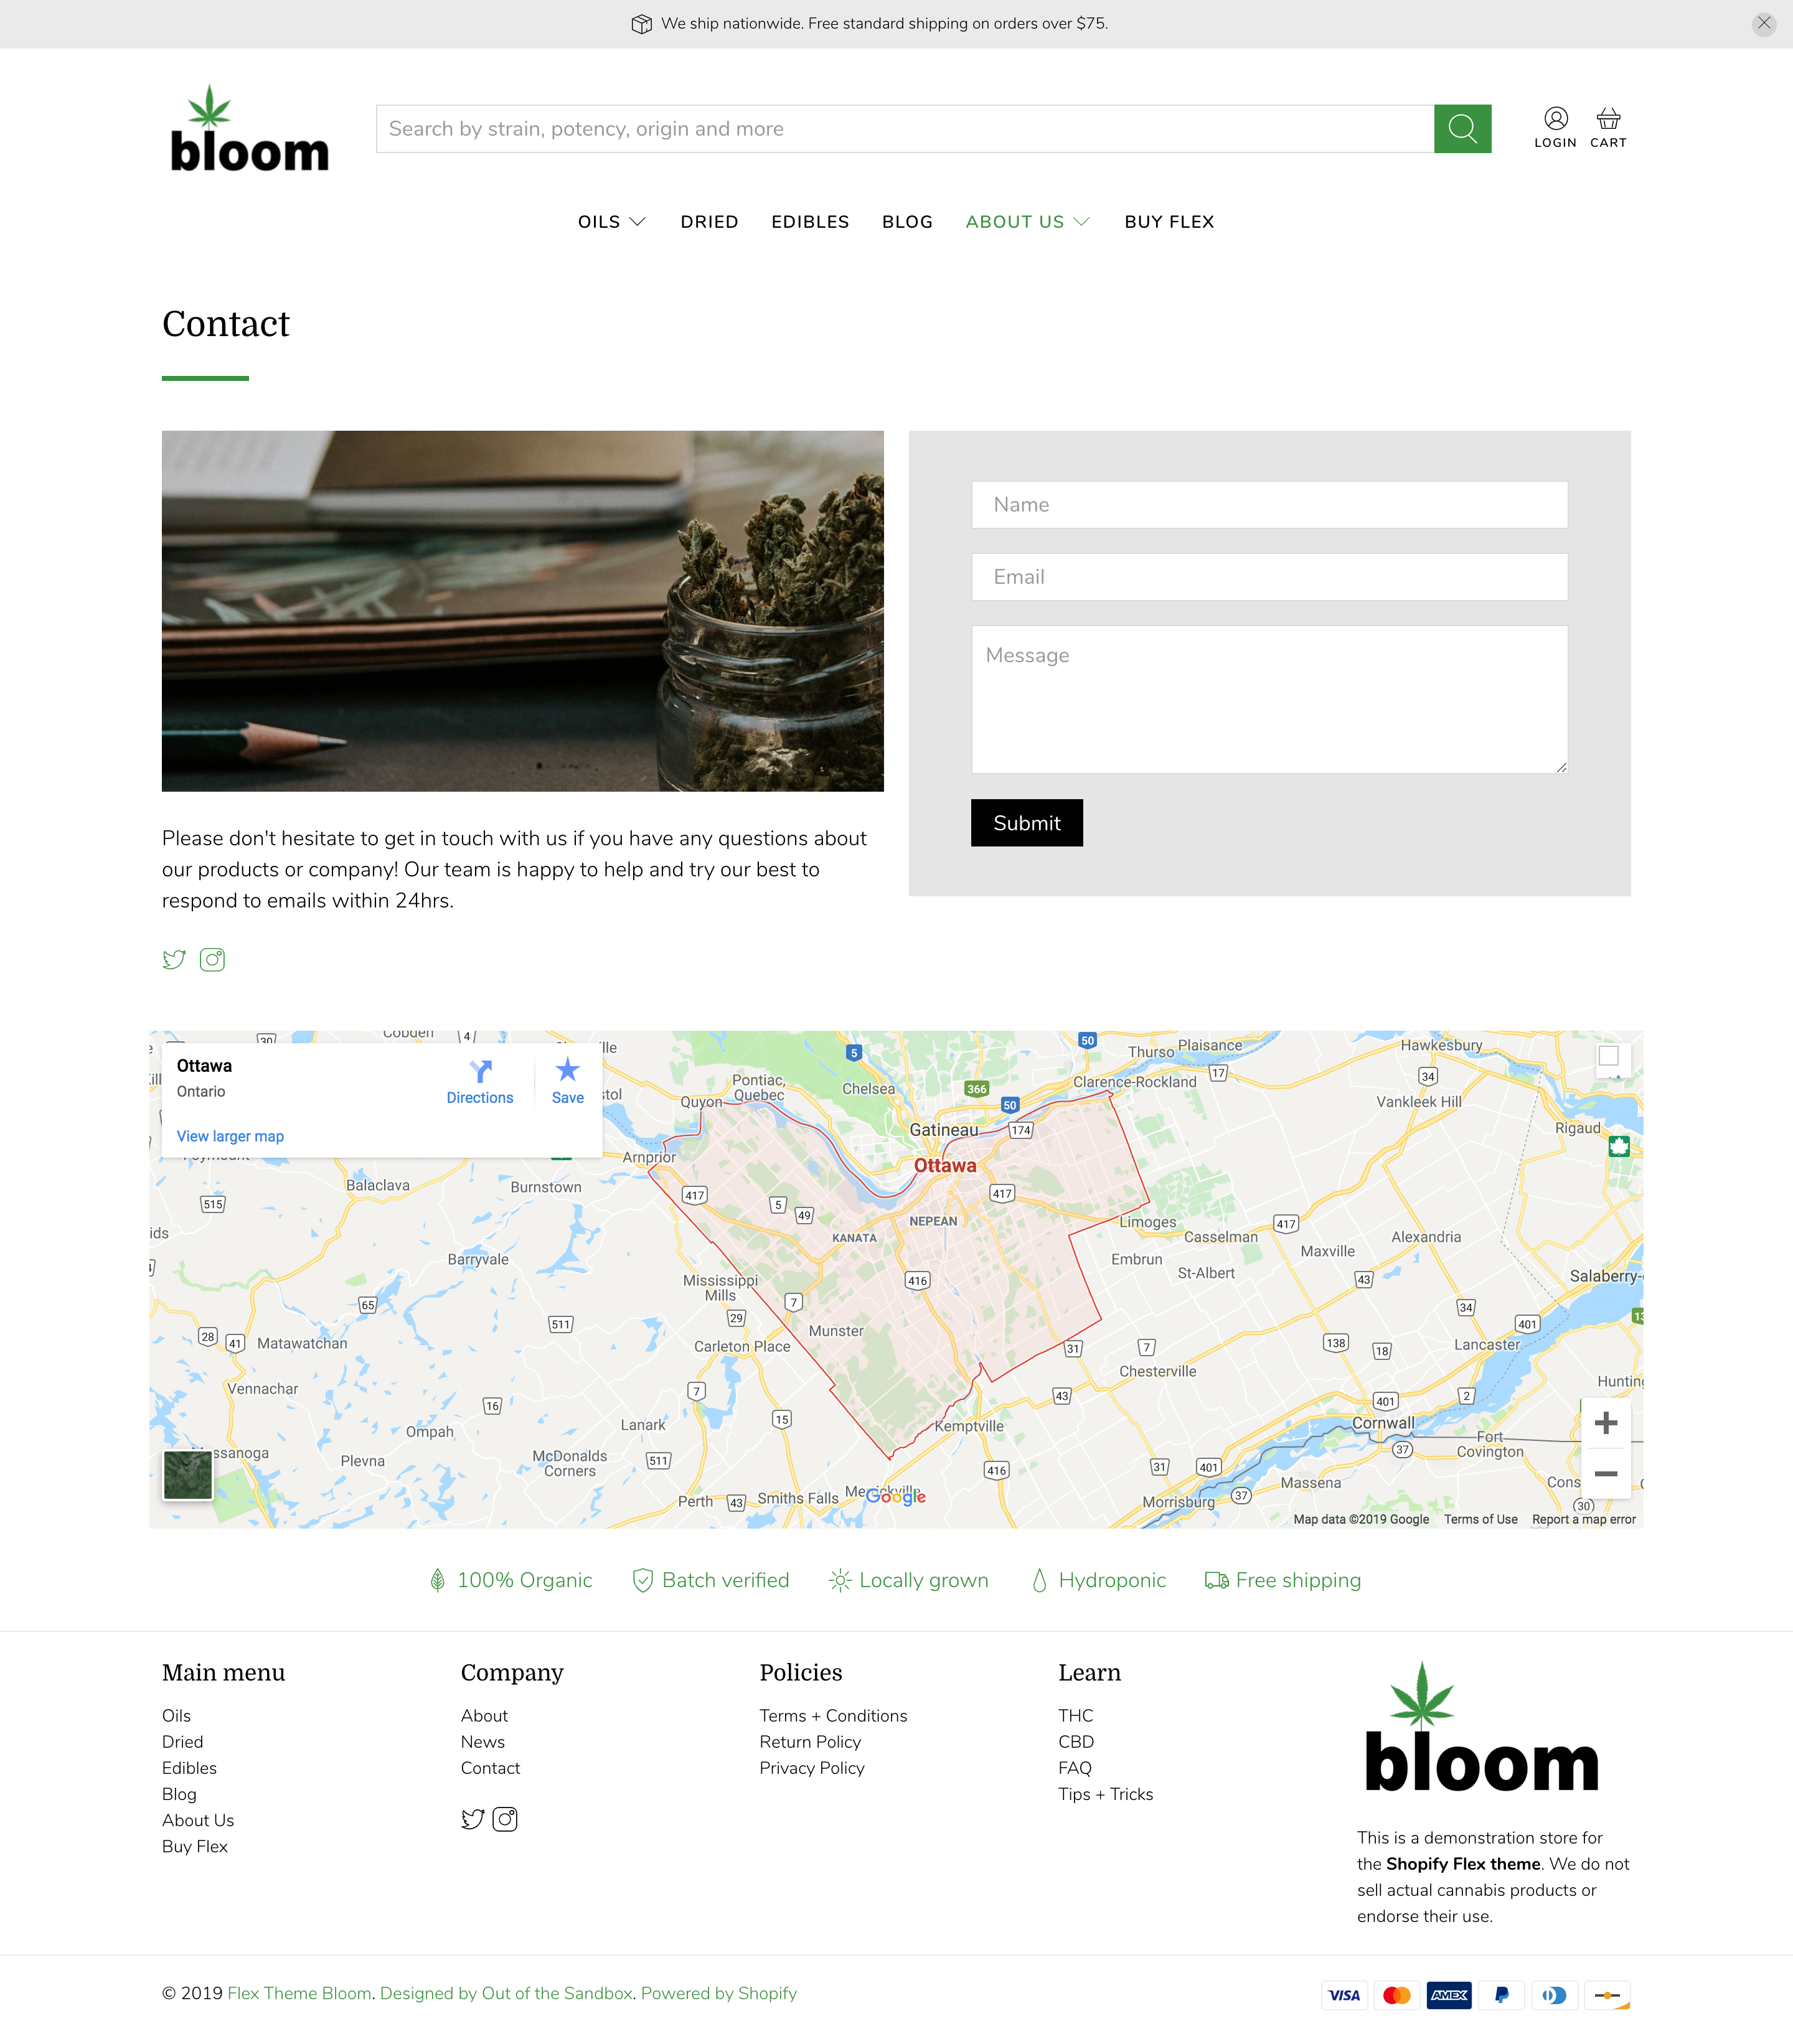 contact-page-bloom-shop-example.png